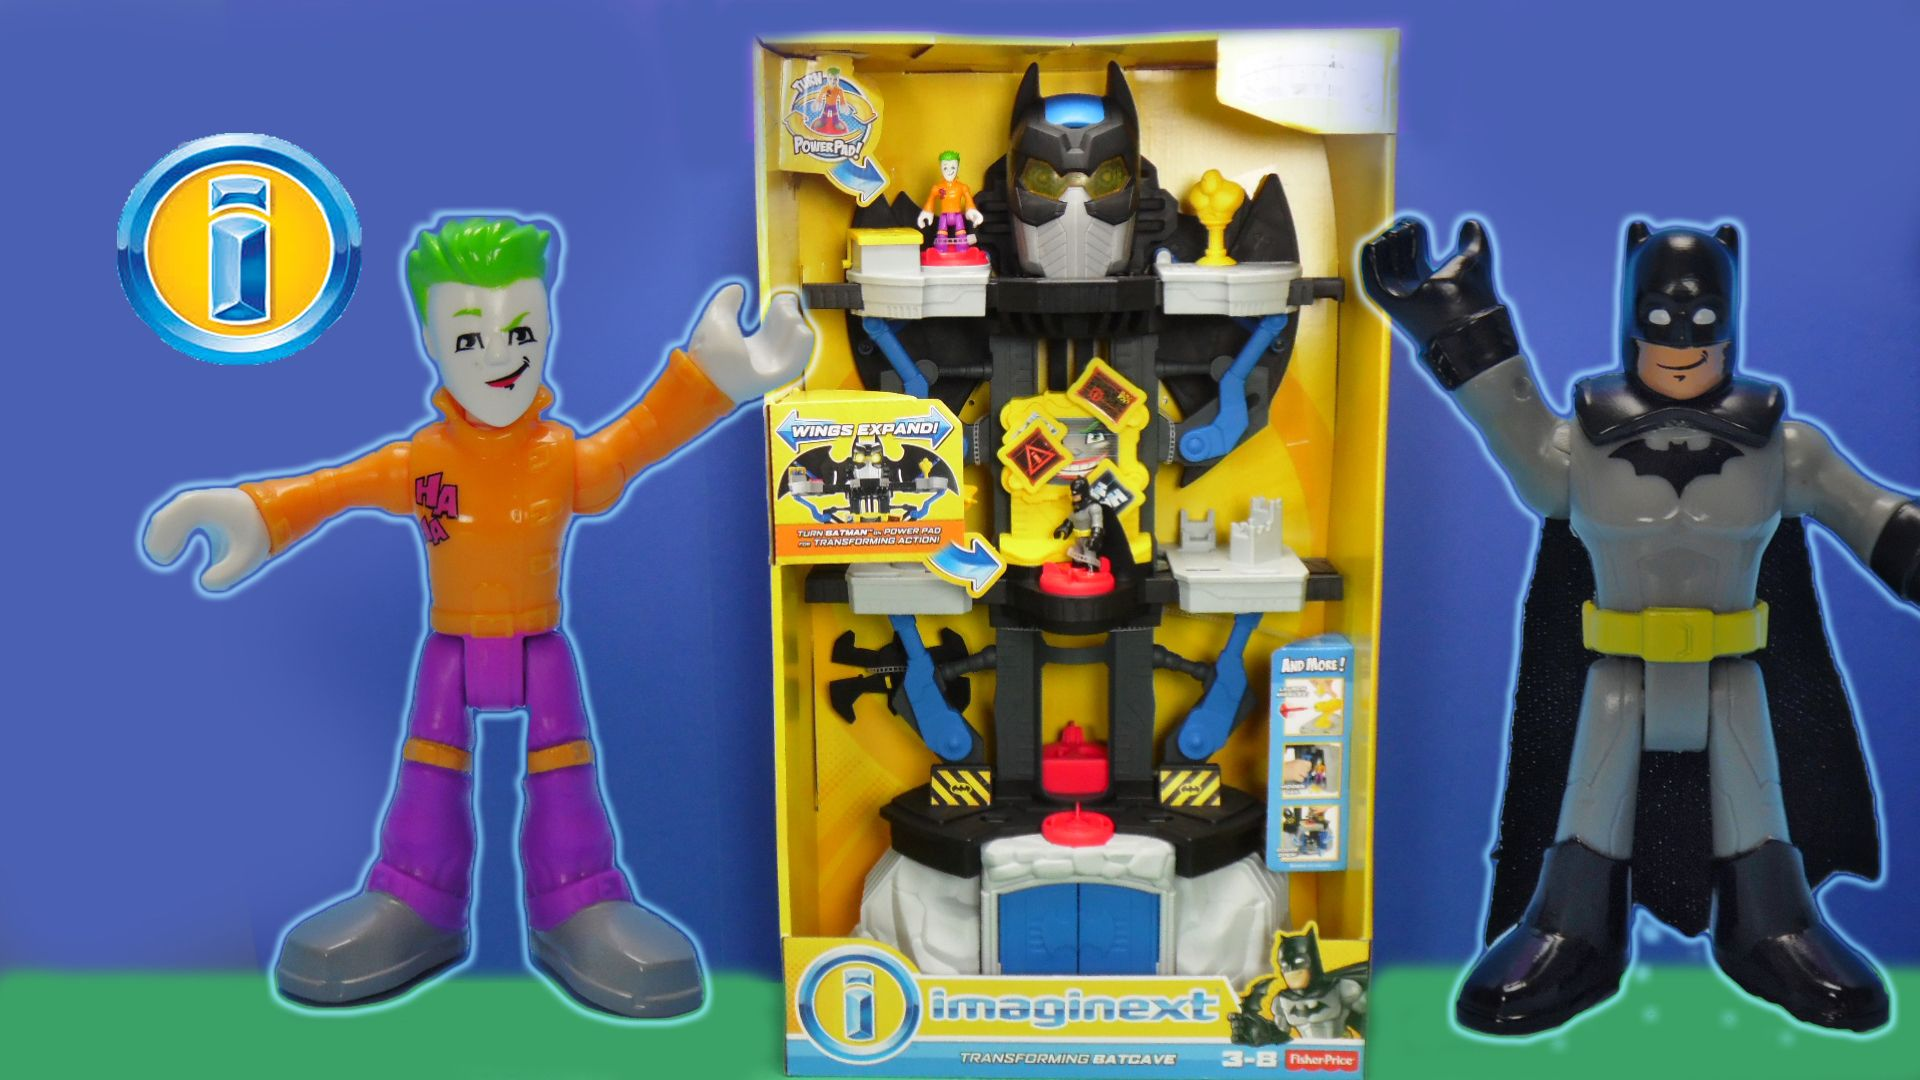 Mattel Superheroes Imaginext DC Transforming Batcave Batman Justice League